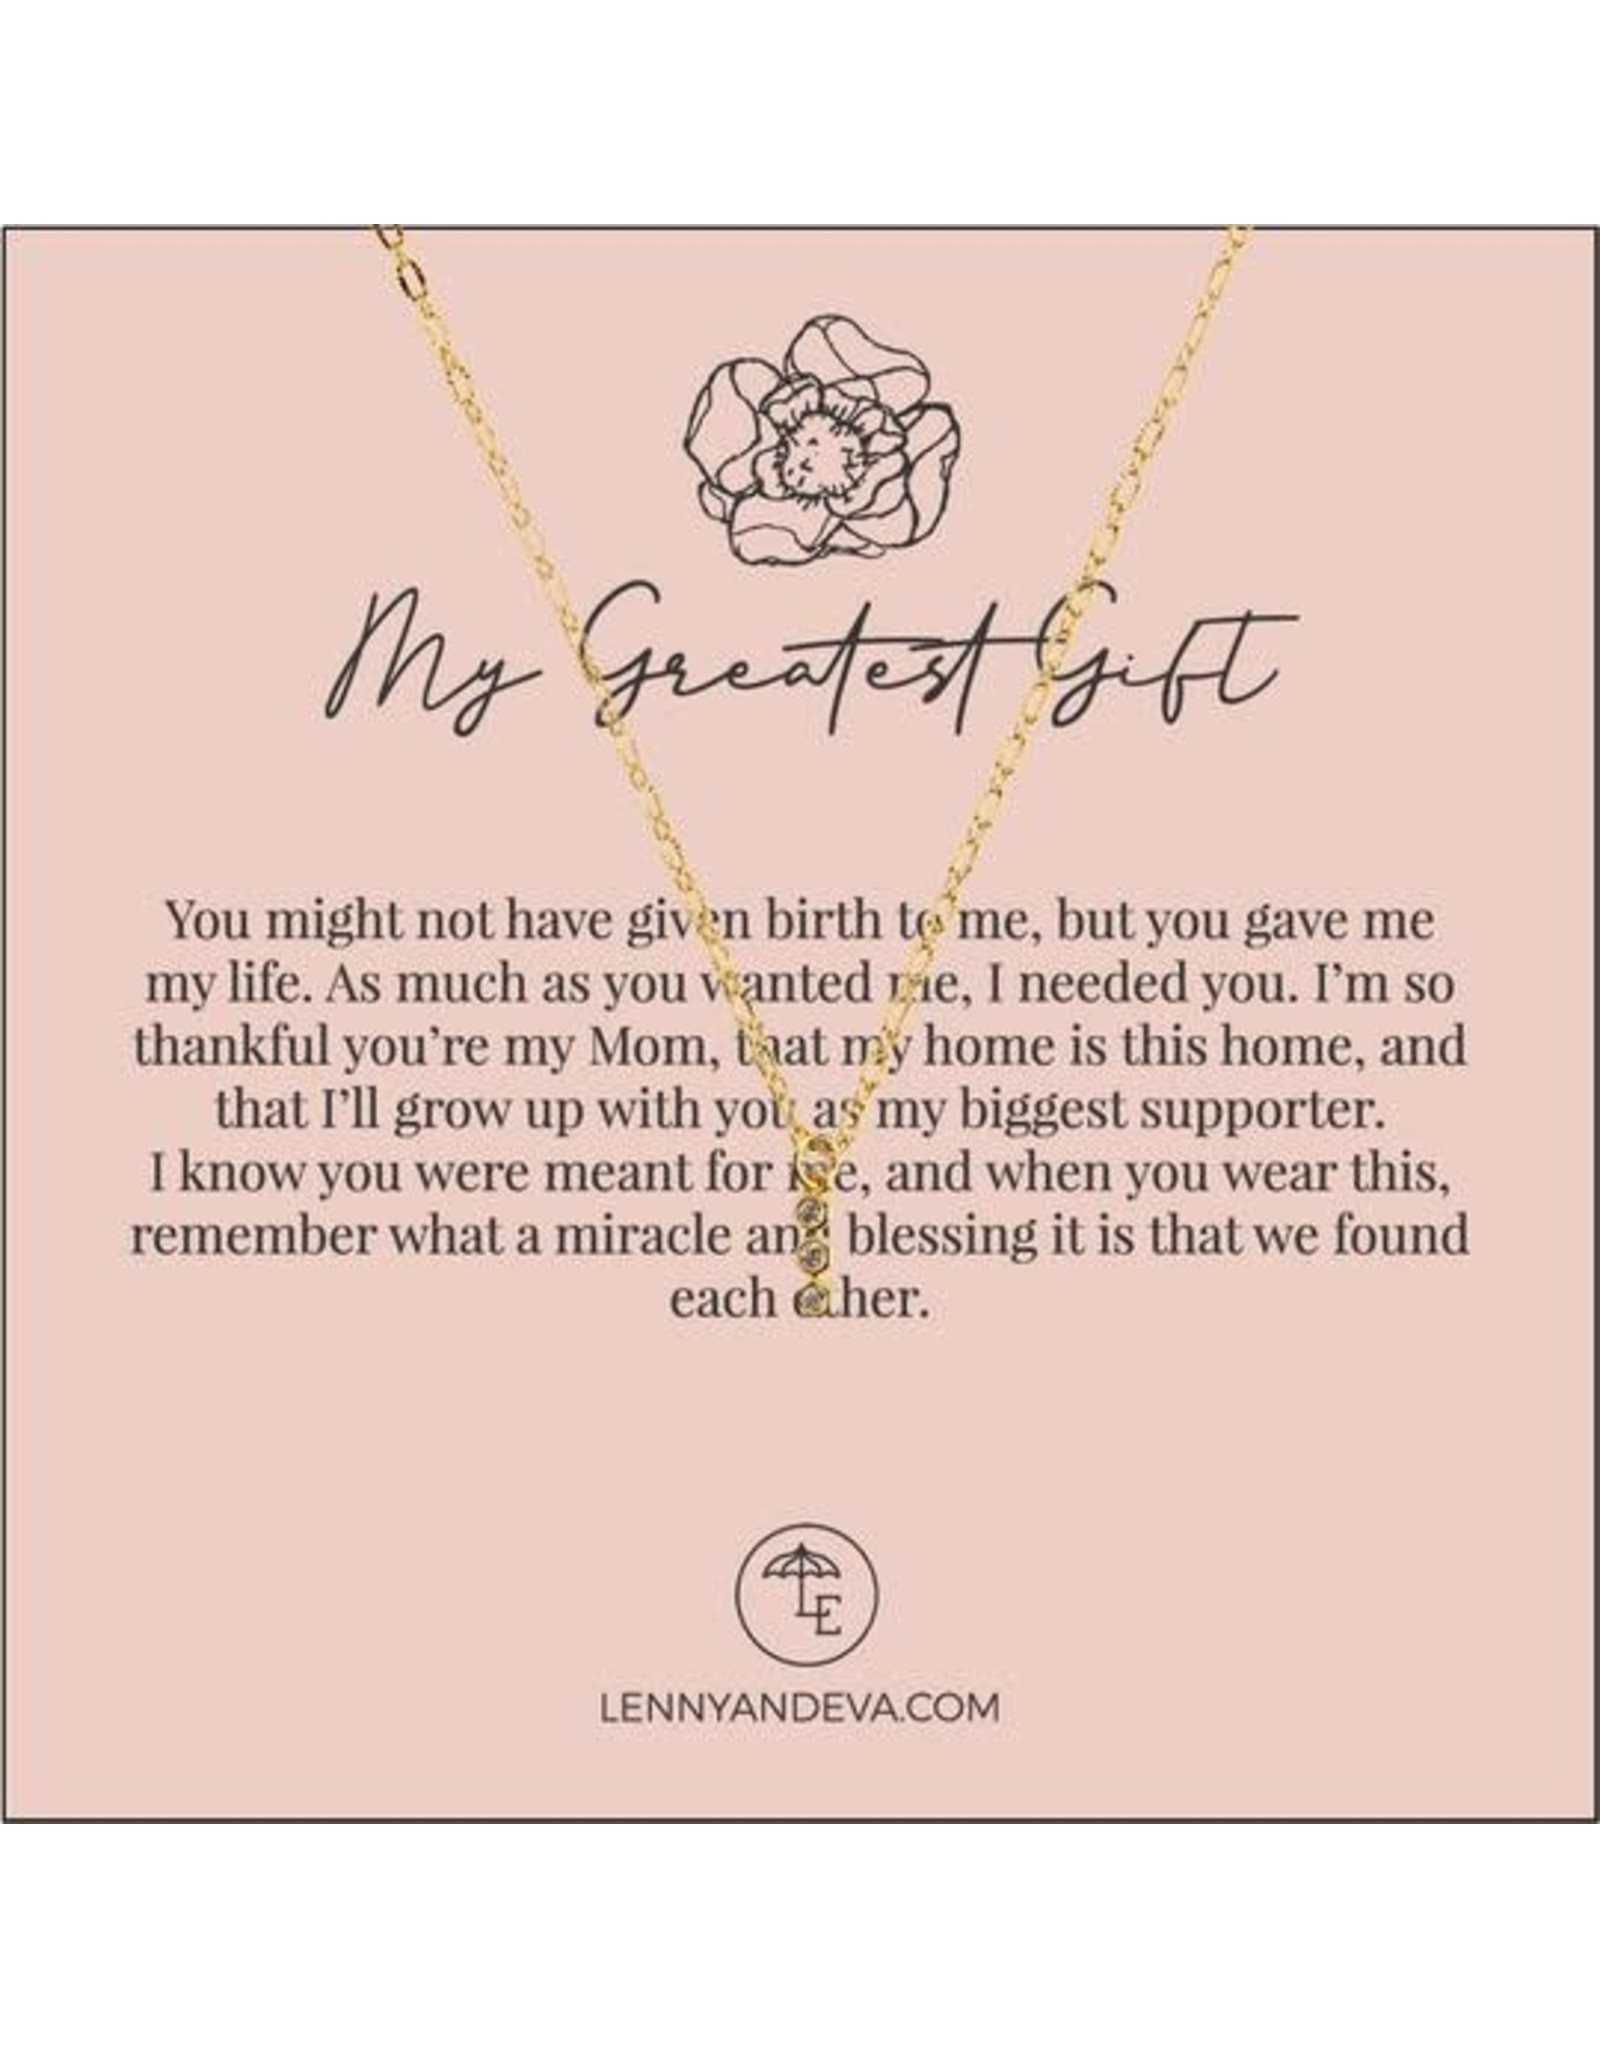 For Her Pendant Necklace, My Greatest Gift